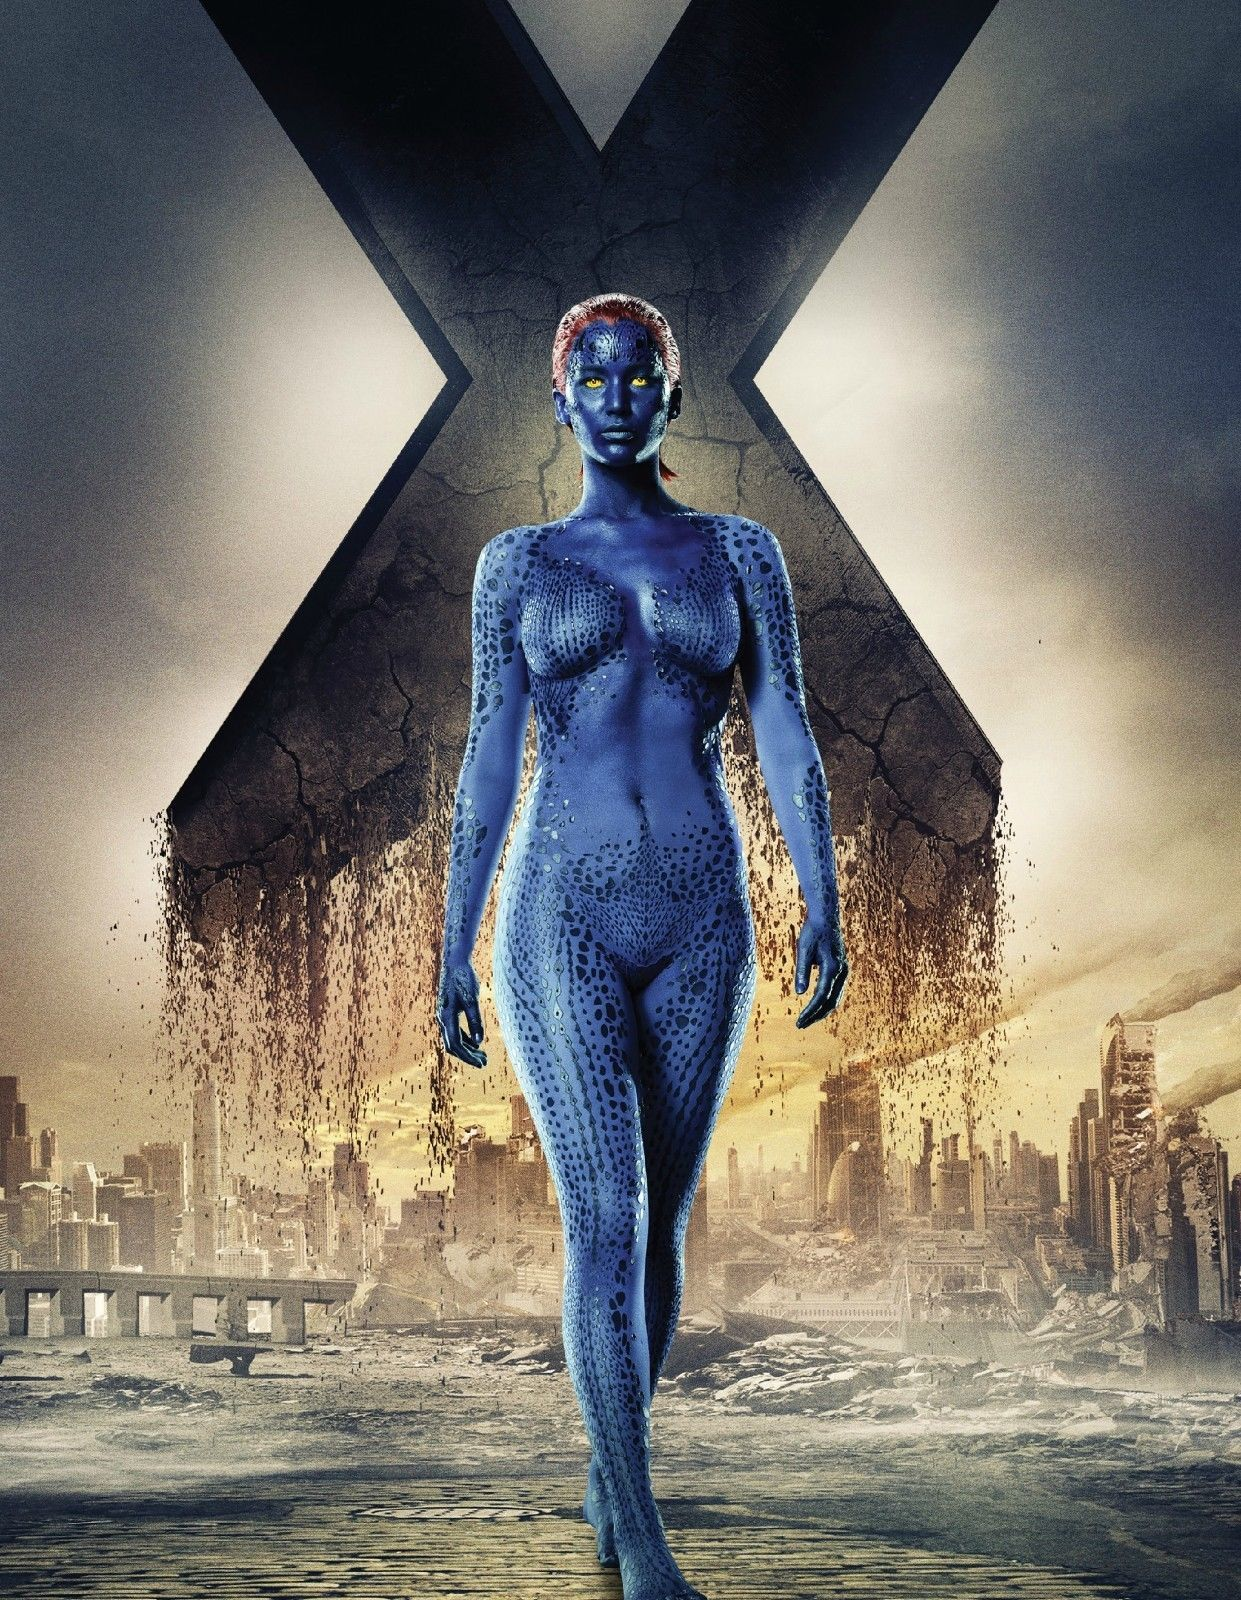 Marvel X-Men Days of Future Past Mystique Lawrence Wall Poster HD 24x36 inches